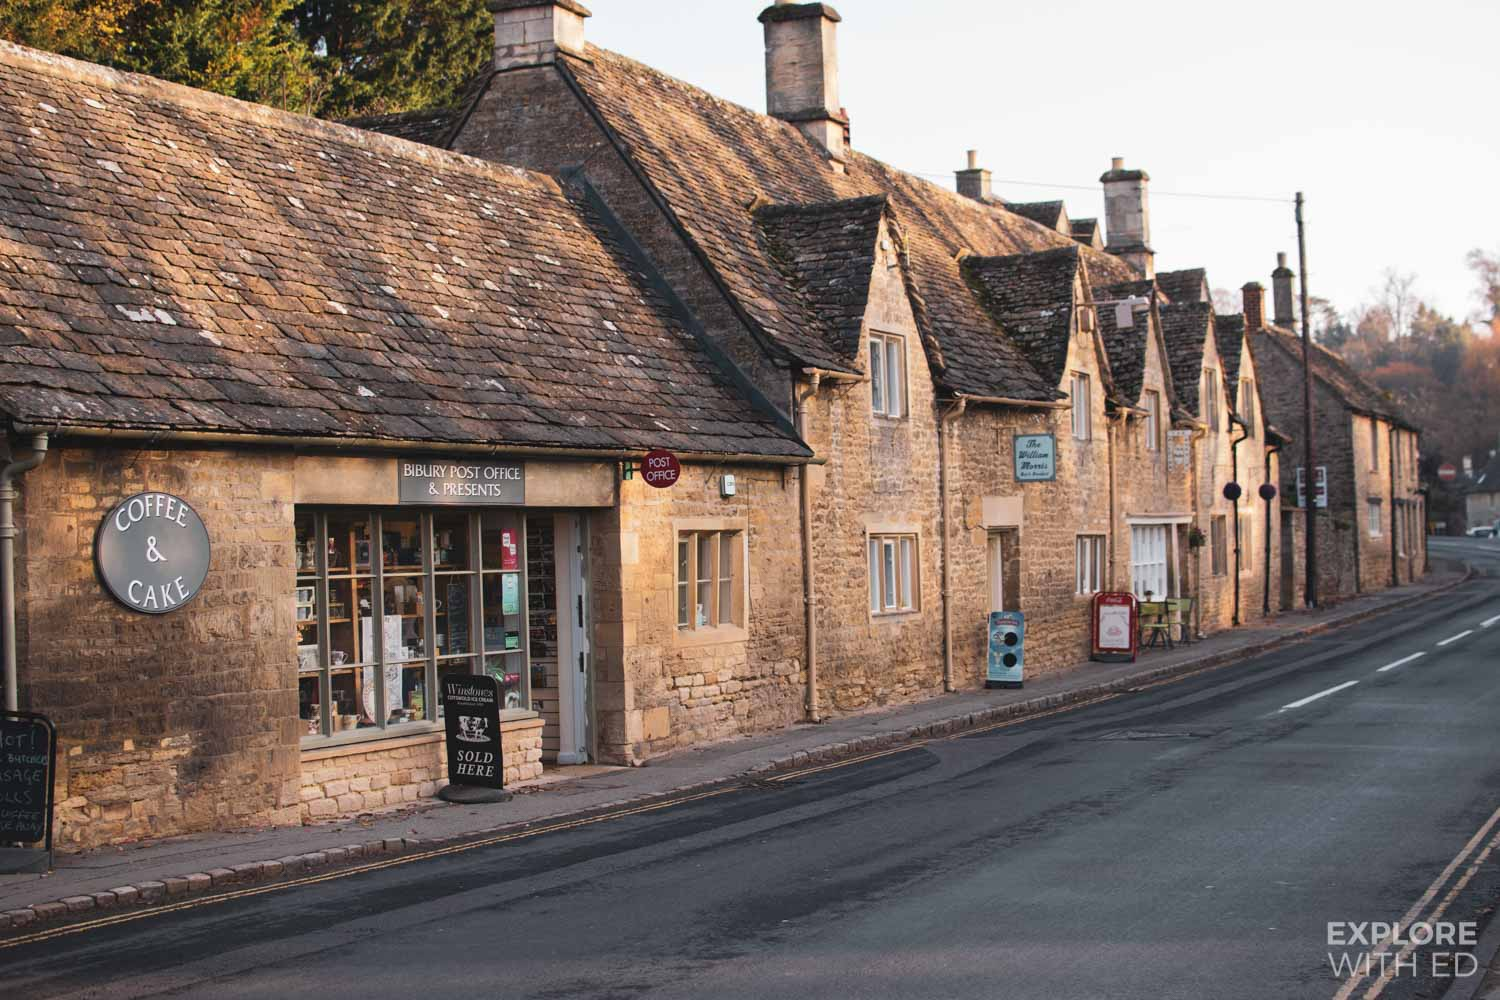 Bibury post office and presents